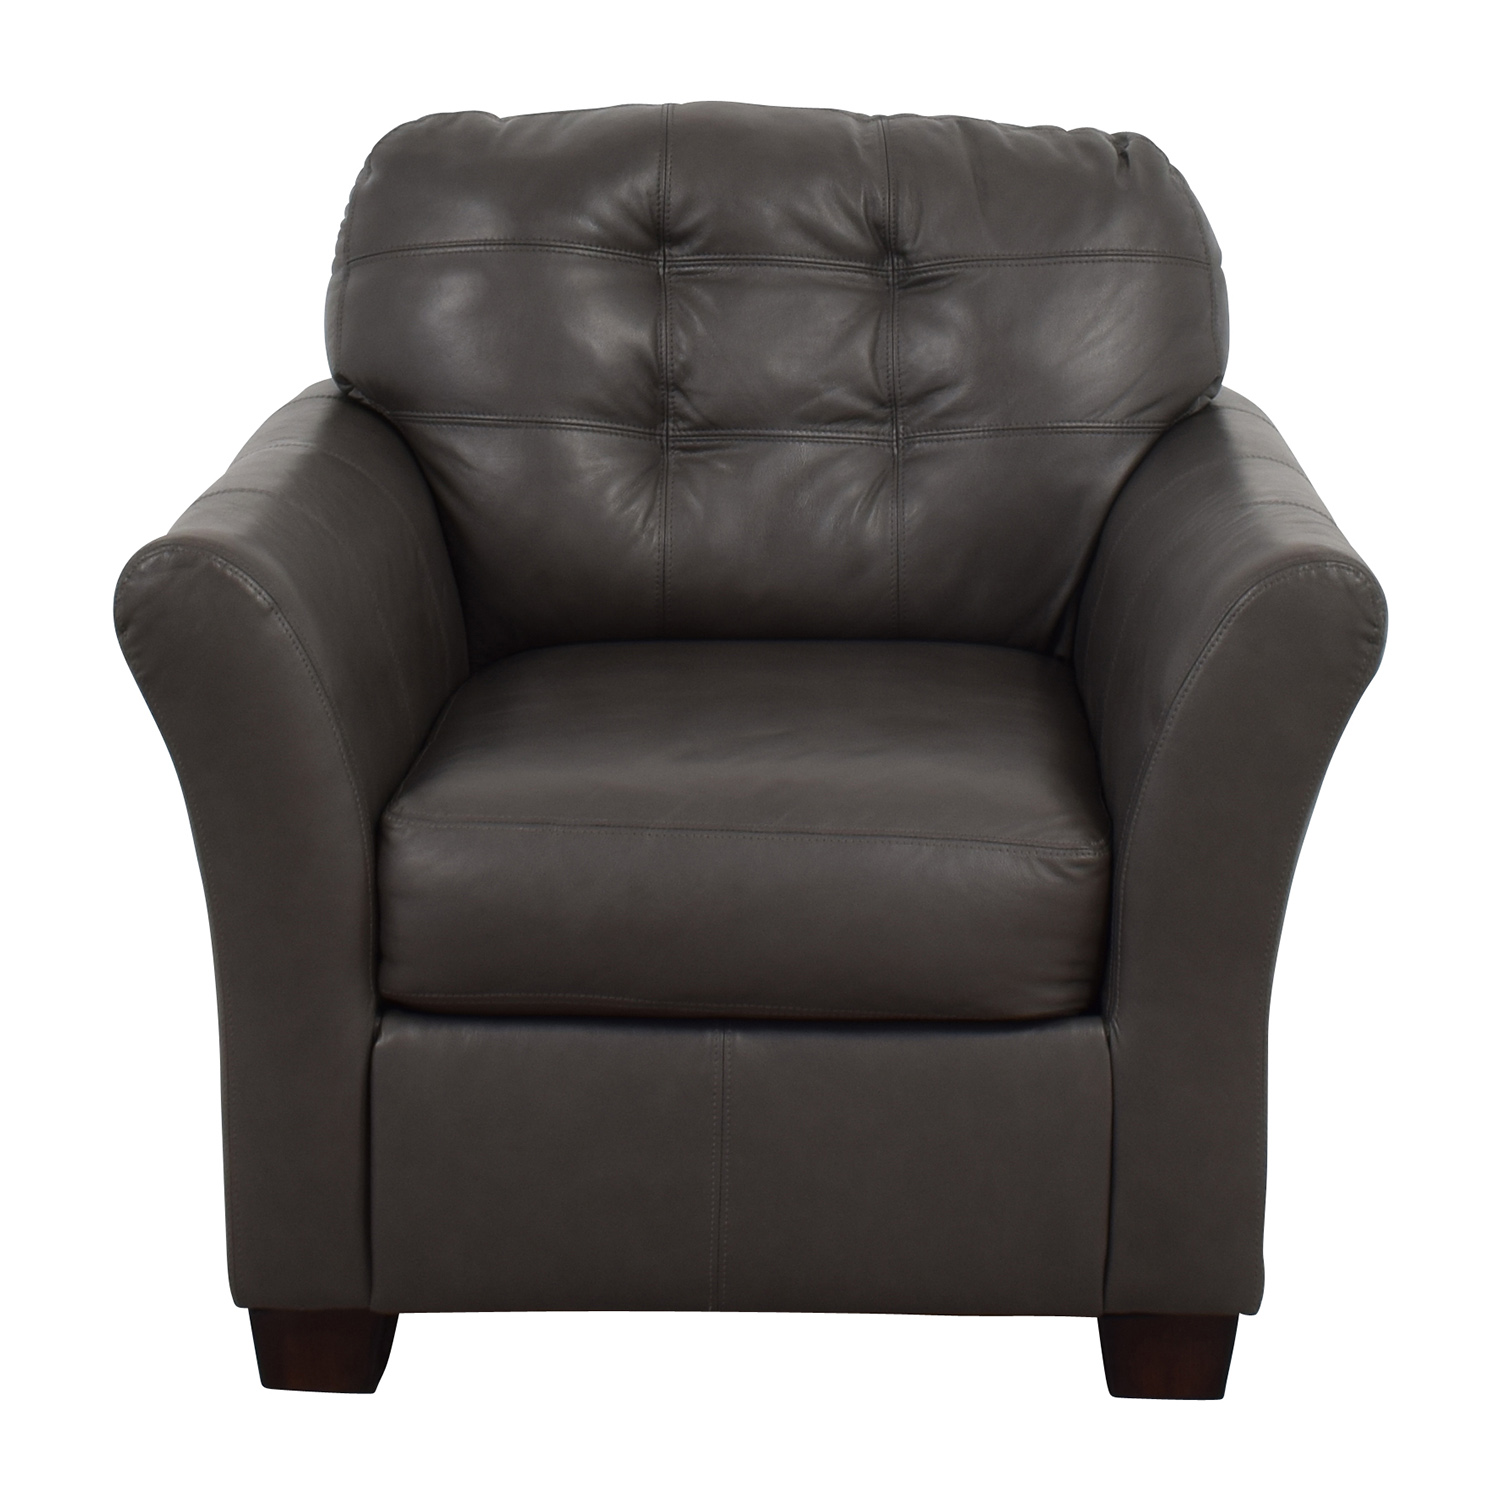 Ashley Furniture Gray Leather Chair